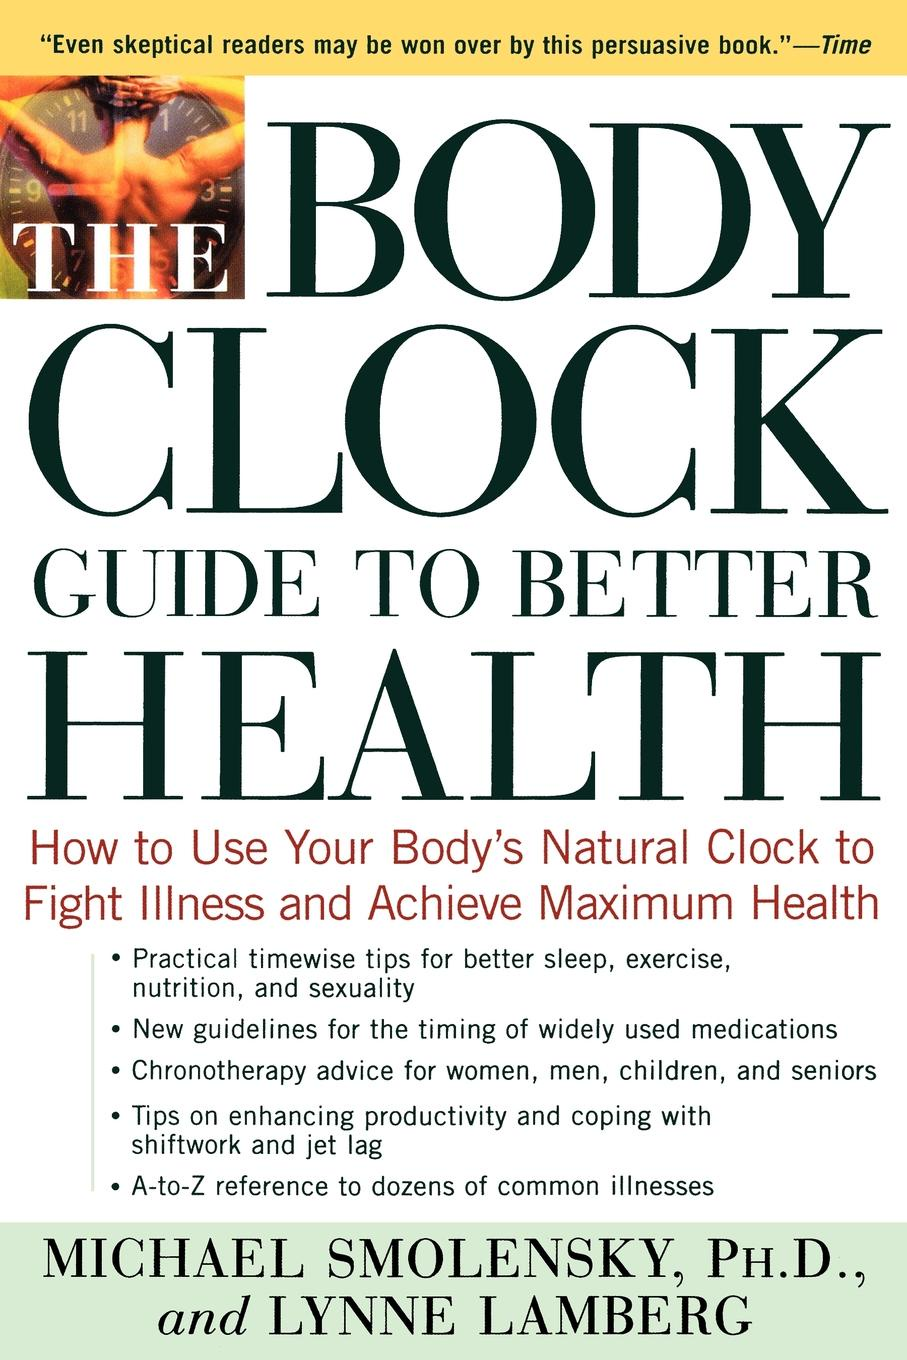 Michael Smolensky, Lynne Lamberg The Body Clock Guide to Better Health. How to Use Your Body's Natural Clock to Fight Illness and Achieve Maximum Health karen j carlson the new harvard guide to womens s health